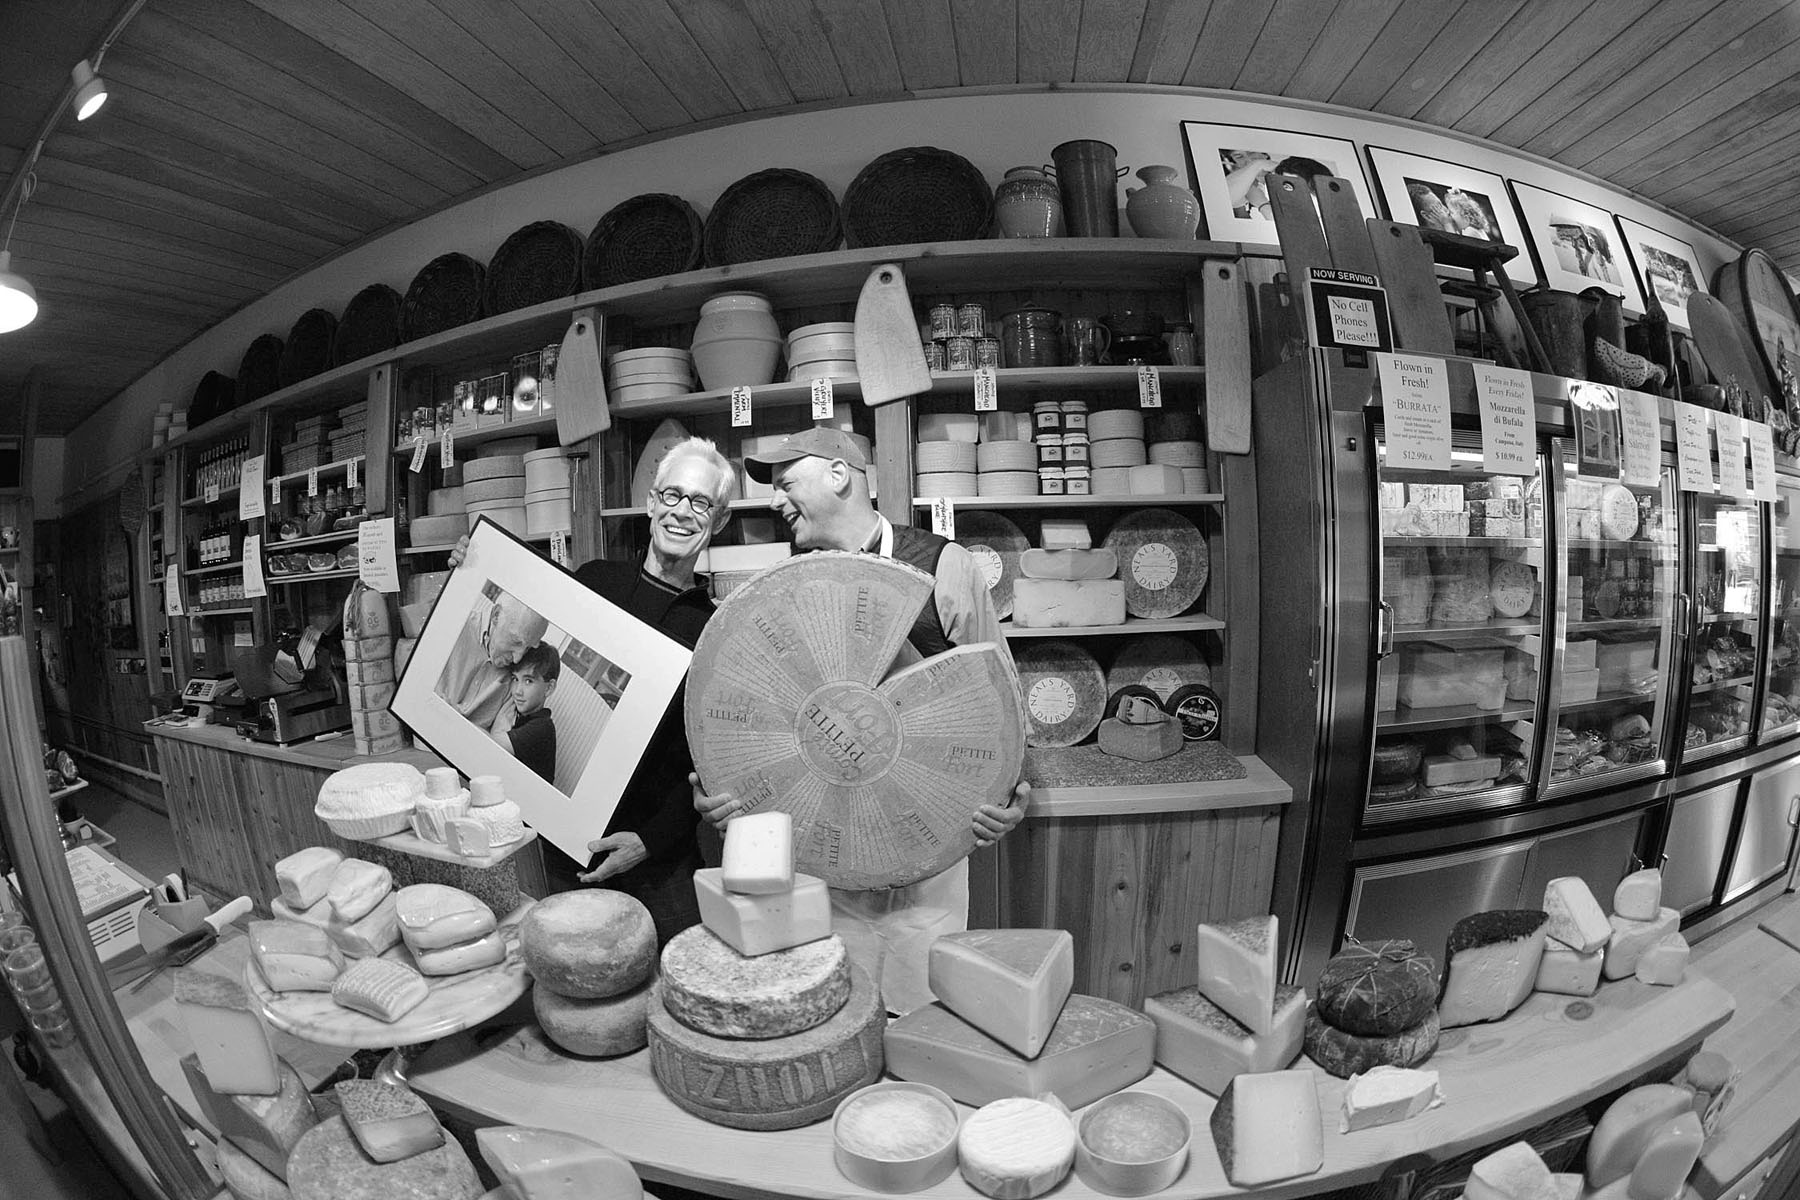 Cheese Shop PR 05.17.12 _86O0119